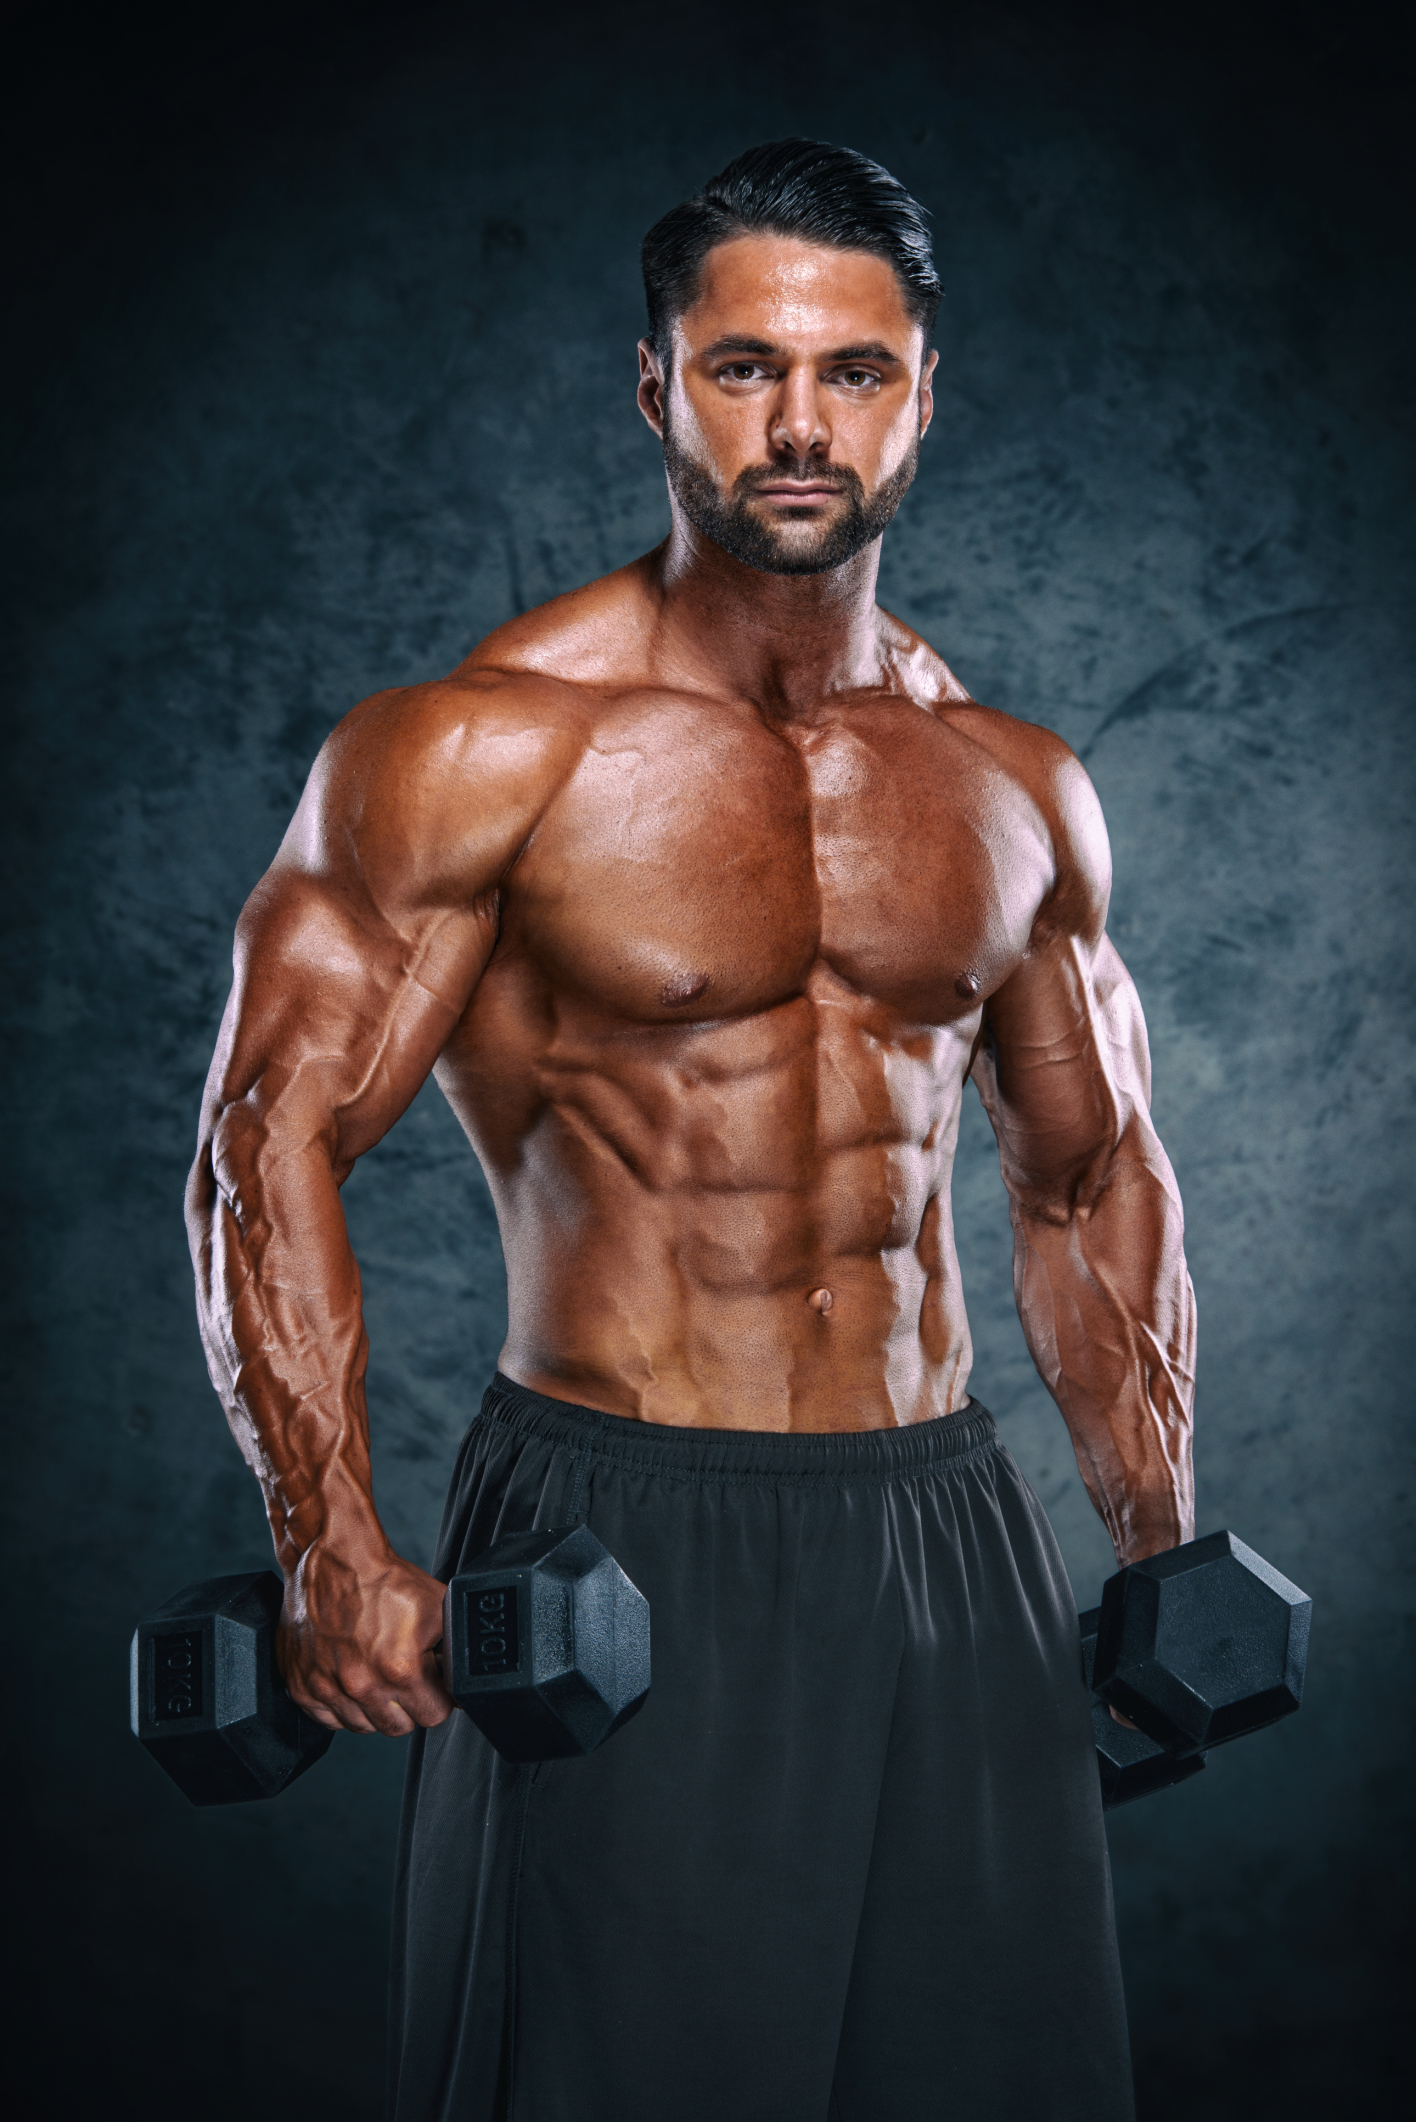 Handsome Athletic Men With Weights